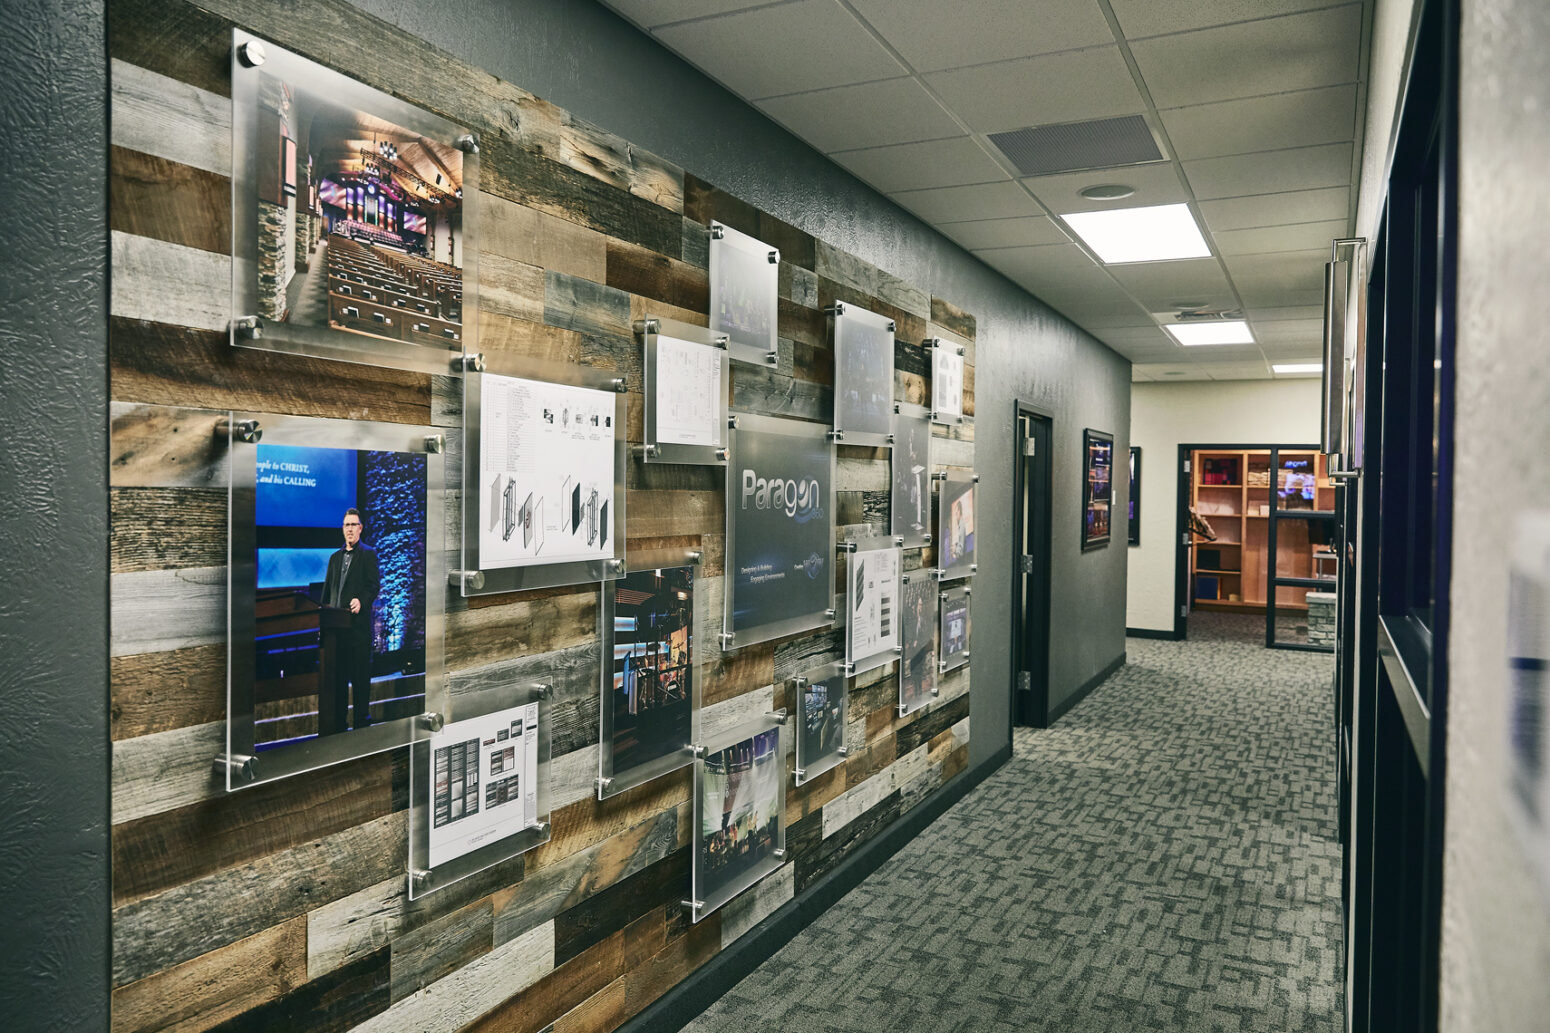 Church interior design project that involved improving administration spaces.